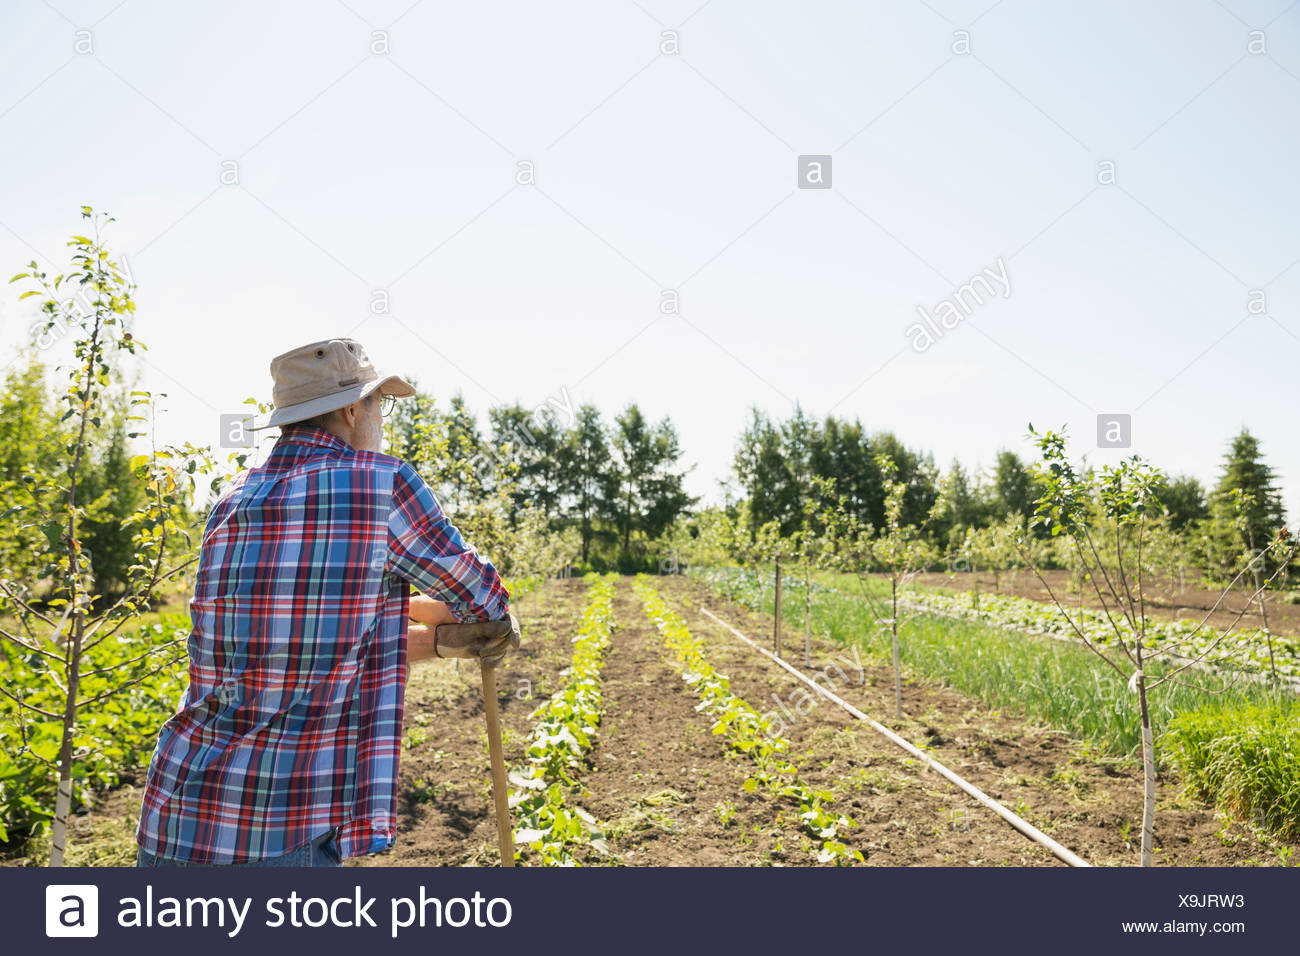 Farmer looking out at sunny garden - Stock Image